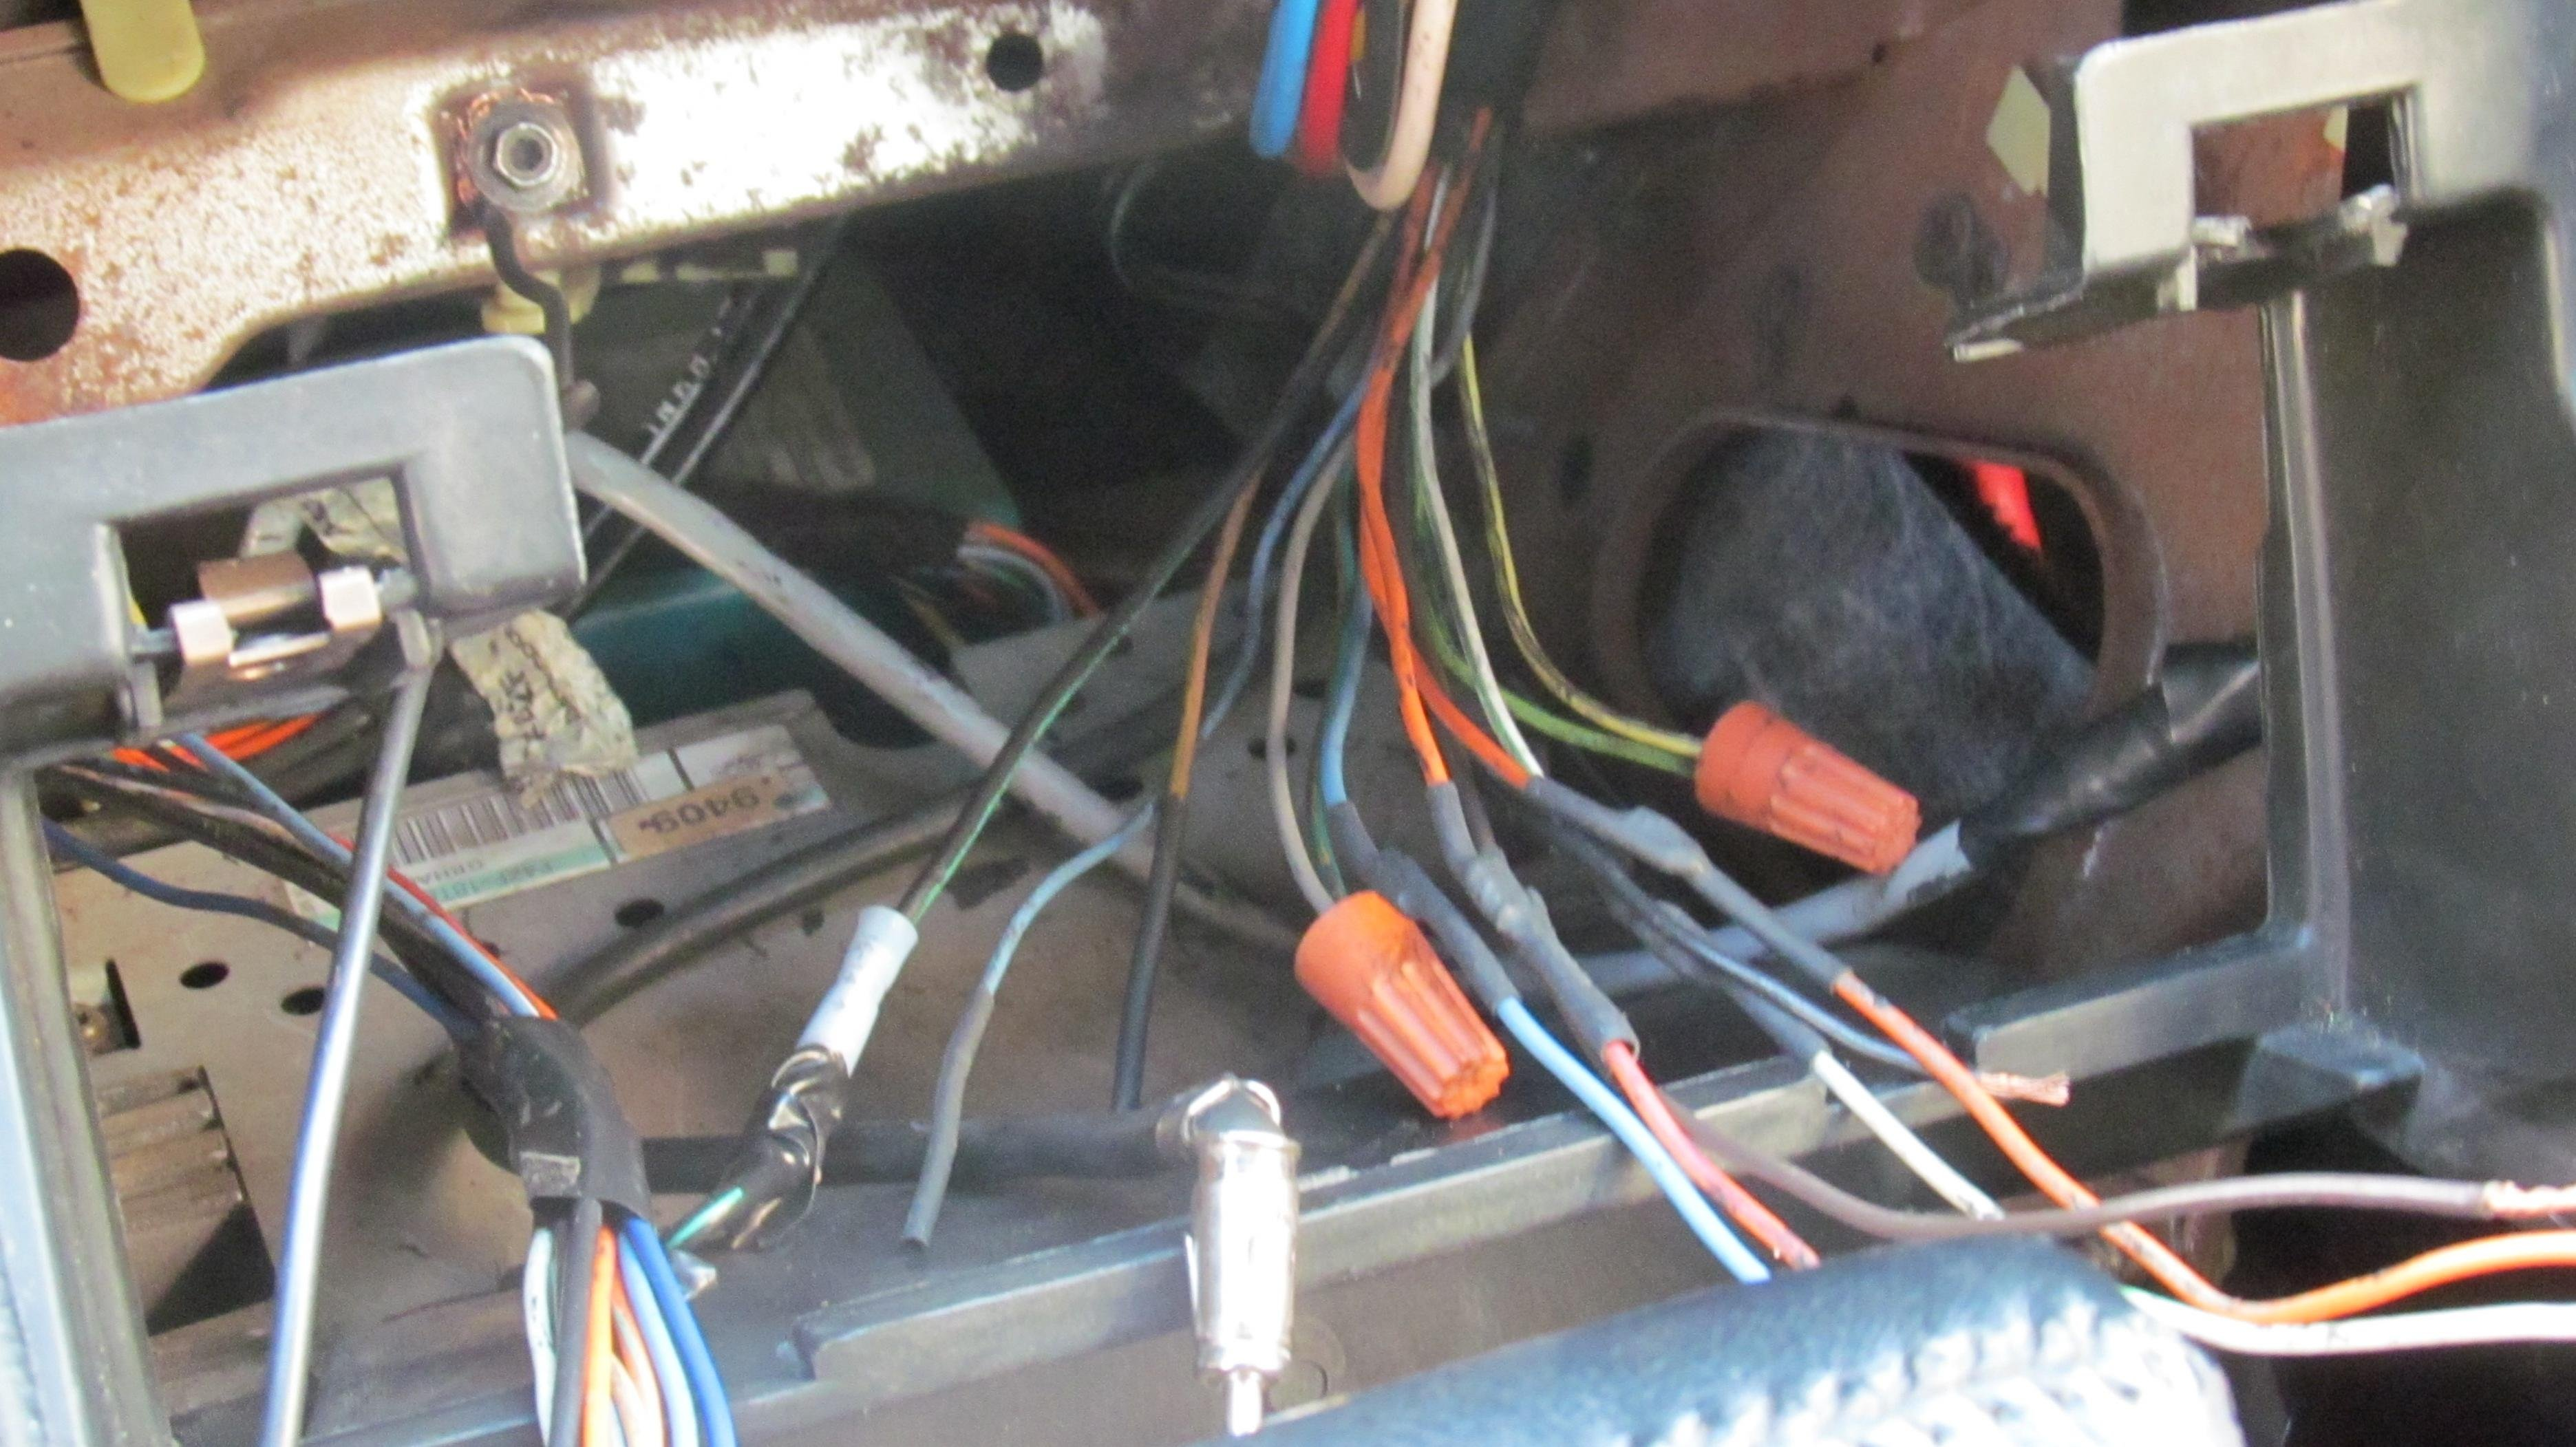 Wiring Diagram As Well Ford Mustang Radio Wiring Diagram On Car